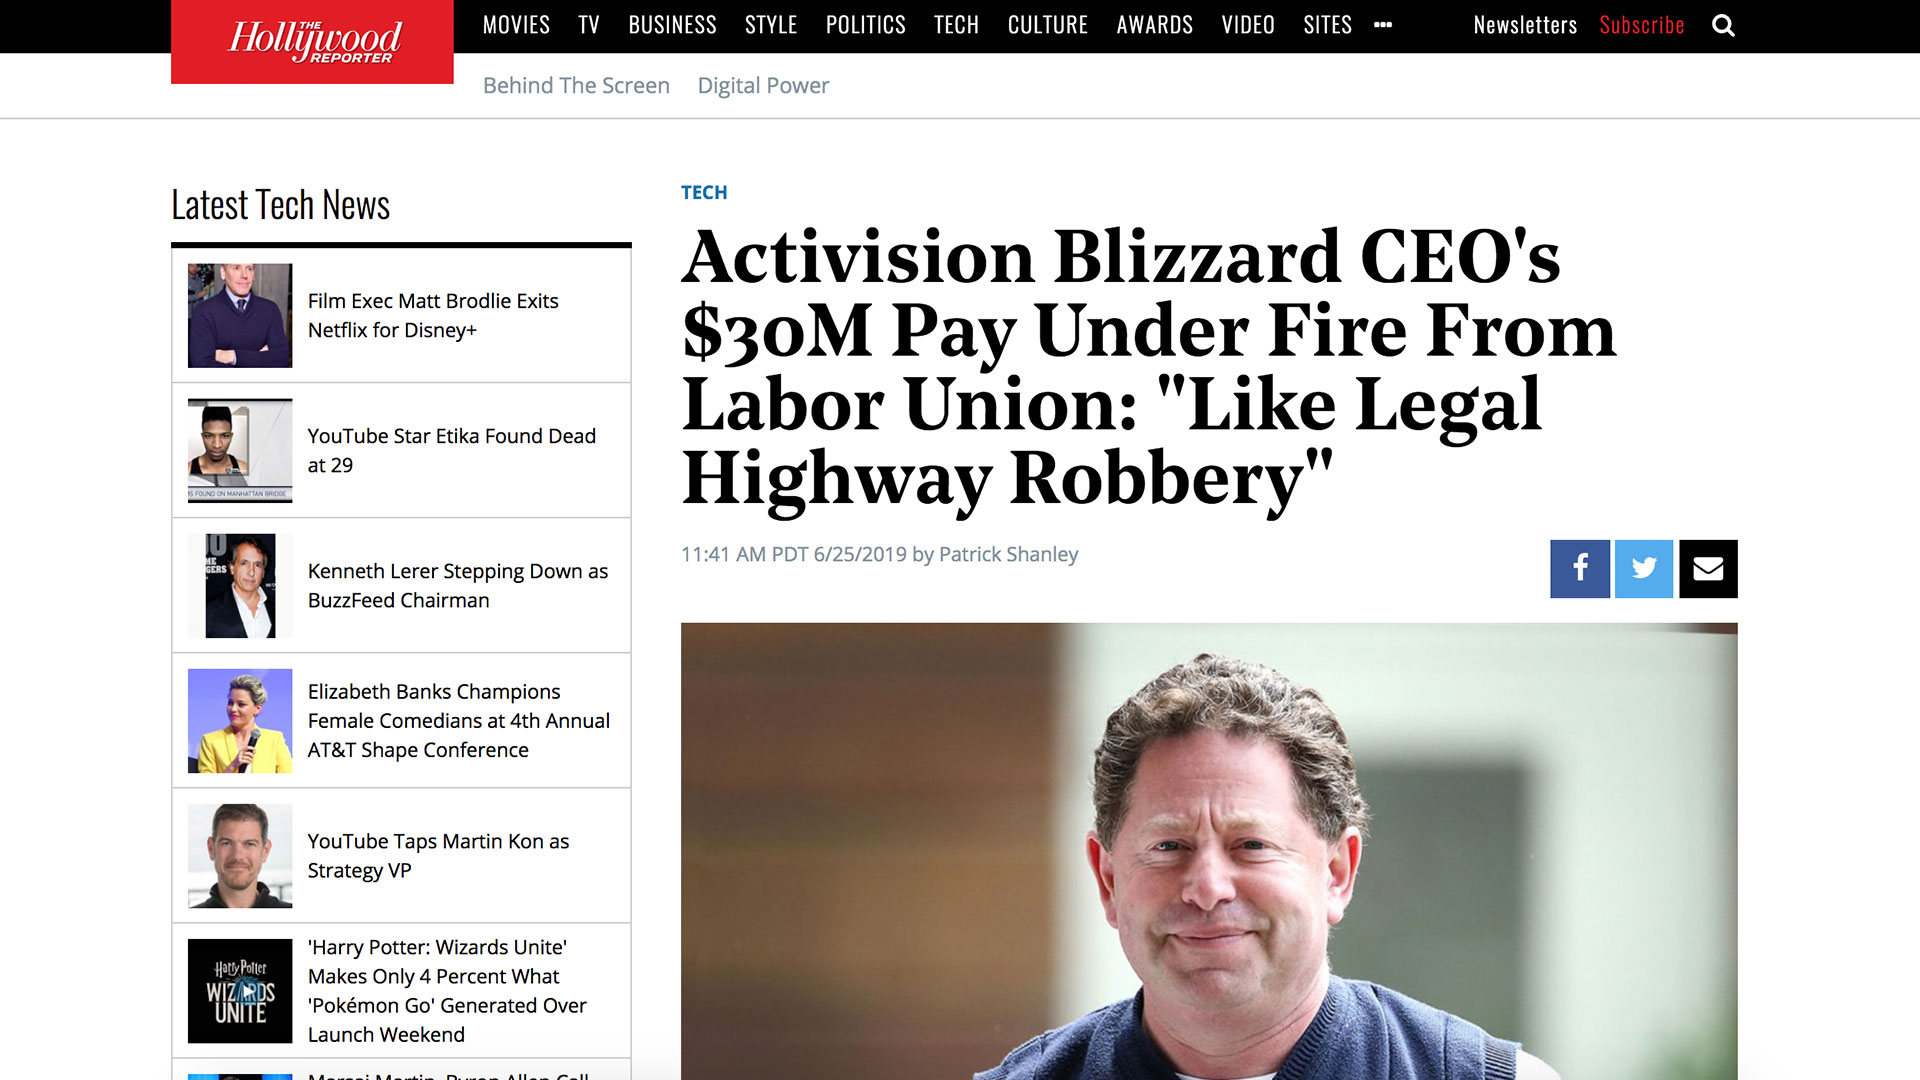 """Fairness Rocks News Activision Blizzard CEO's $30M Pay Under Fire From Labor Union: """"Like Legal Highway Robbery"""""""